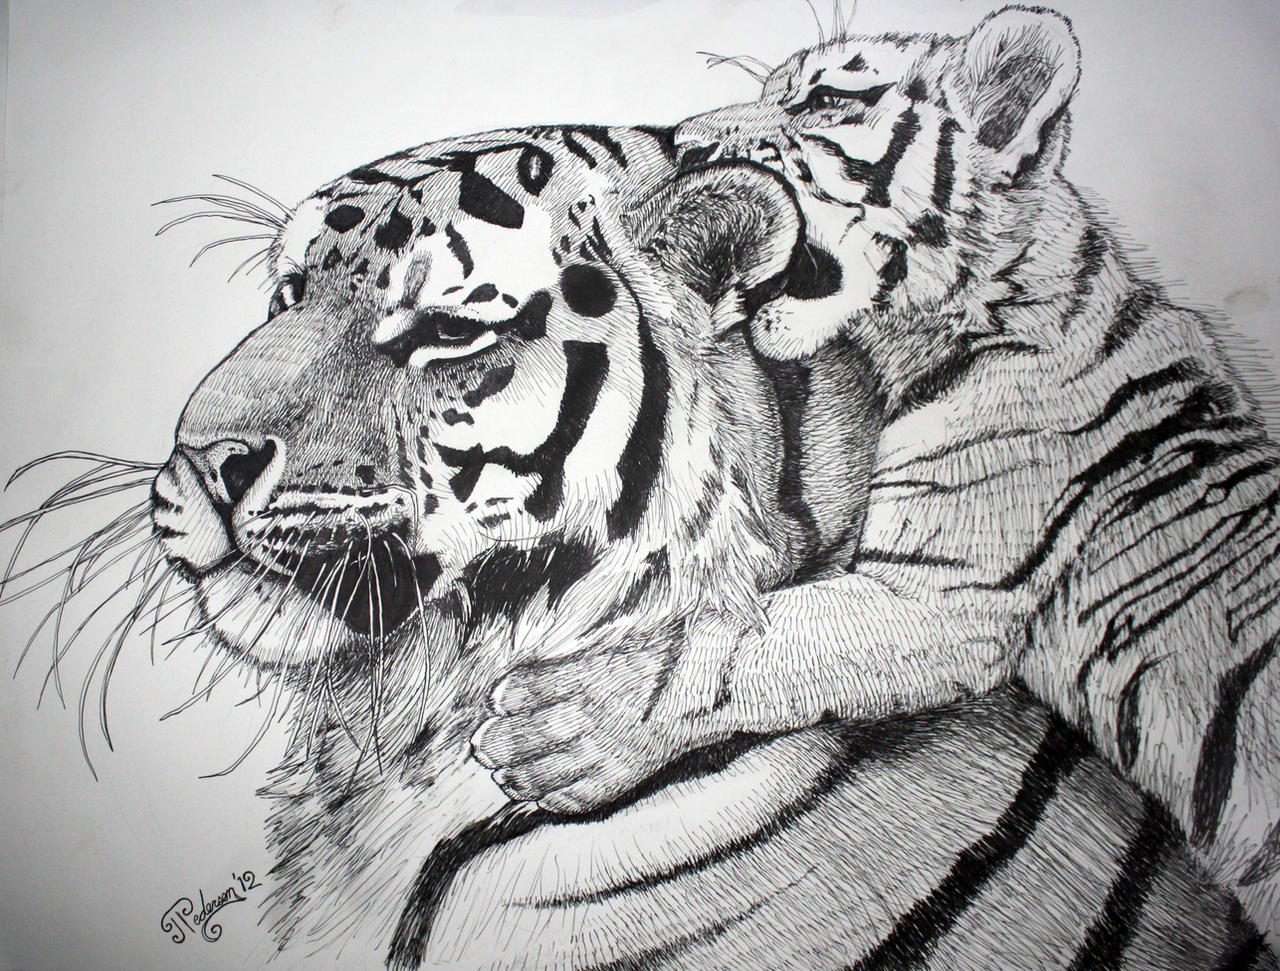 mother tiger and cub by artbyjpp on deviantart